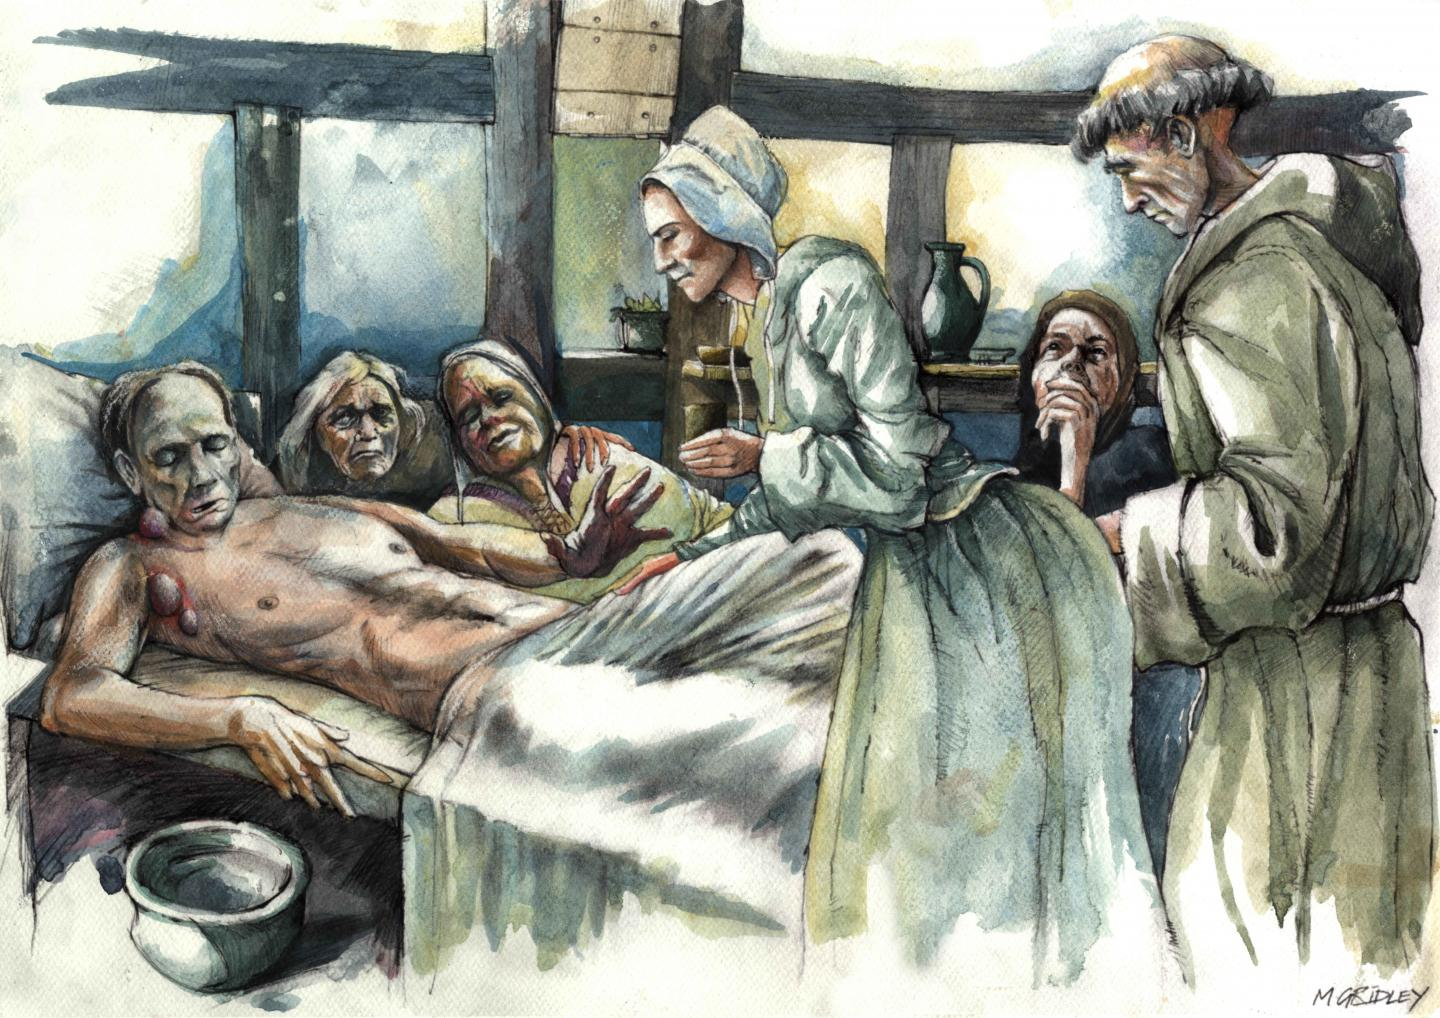 Black Death victims were buried with 'considerable care,' researchers find - Medievalists.net